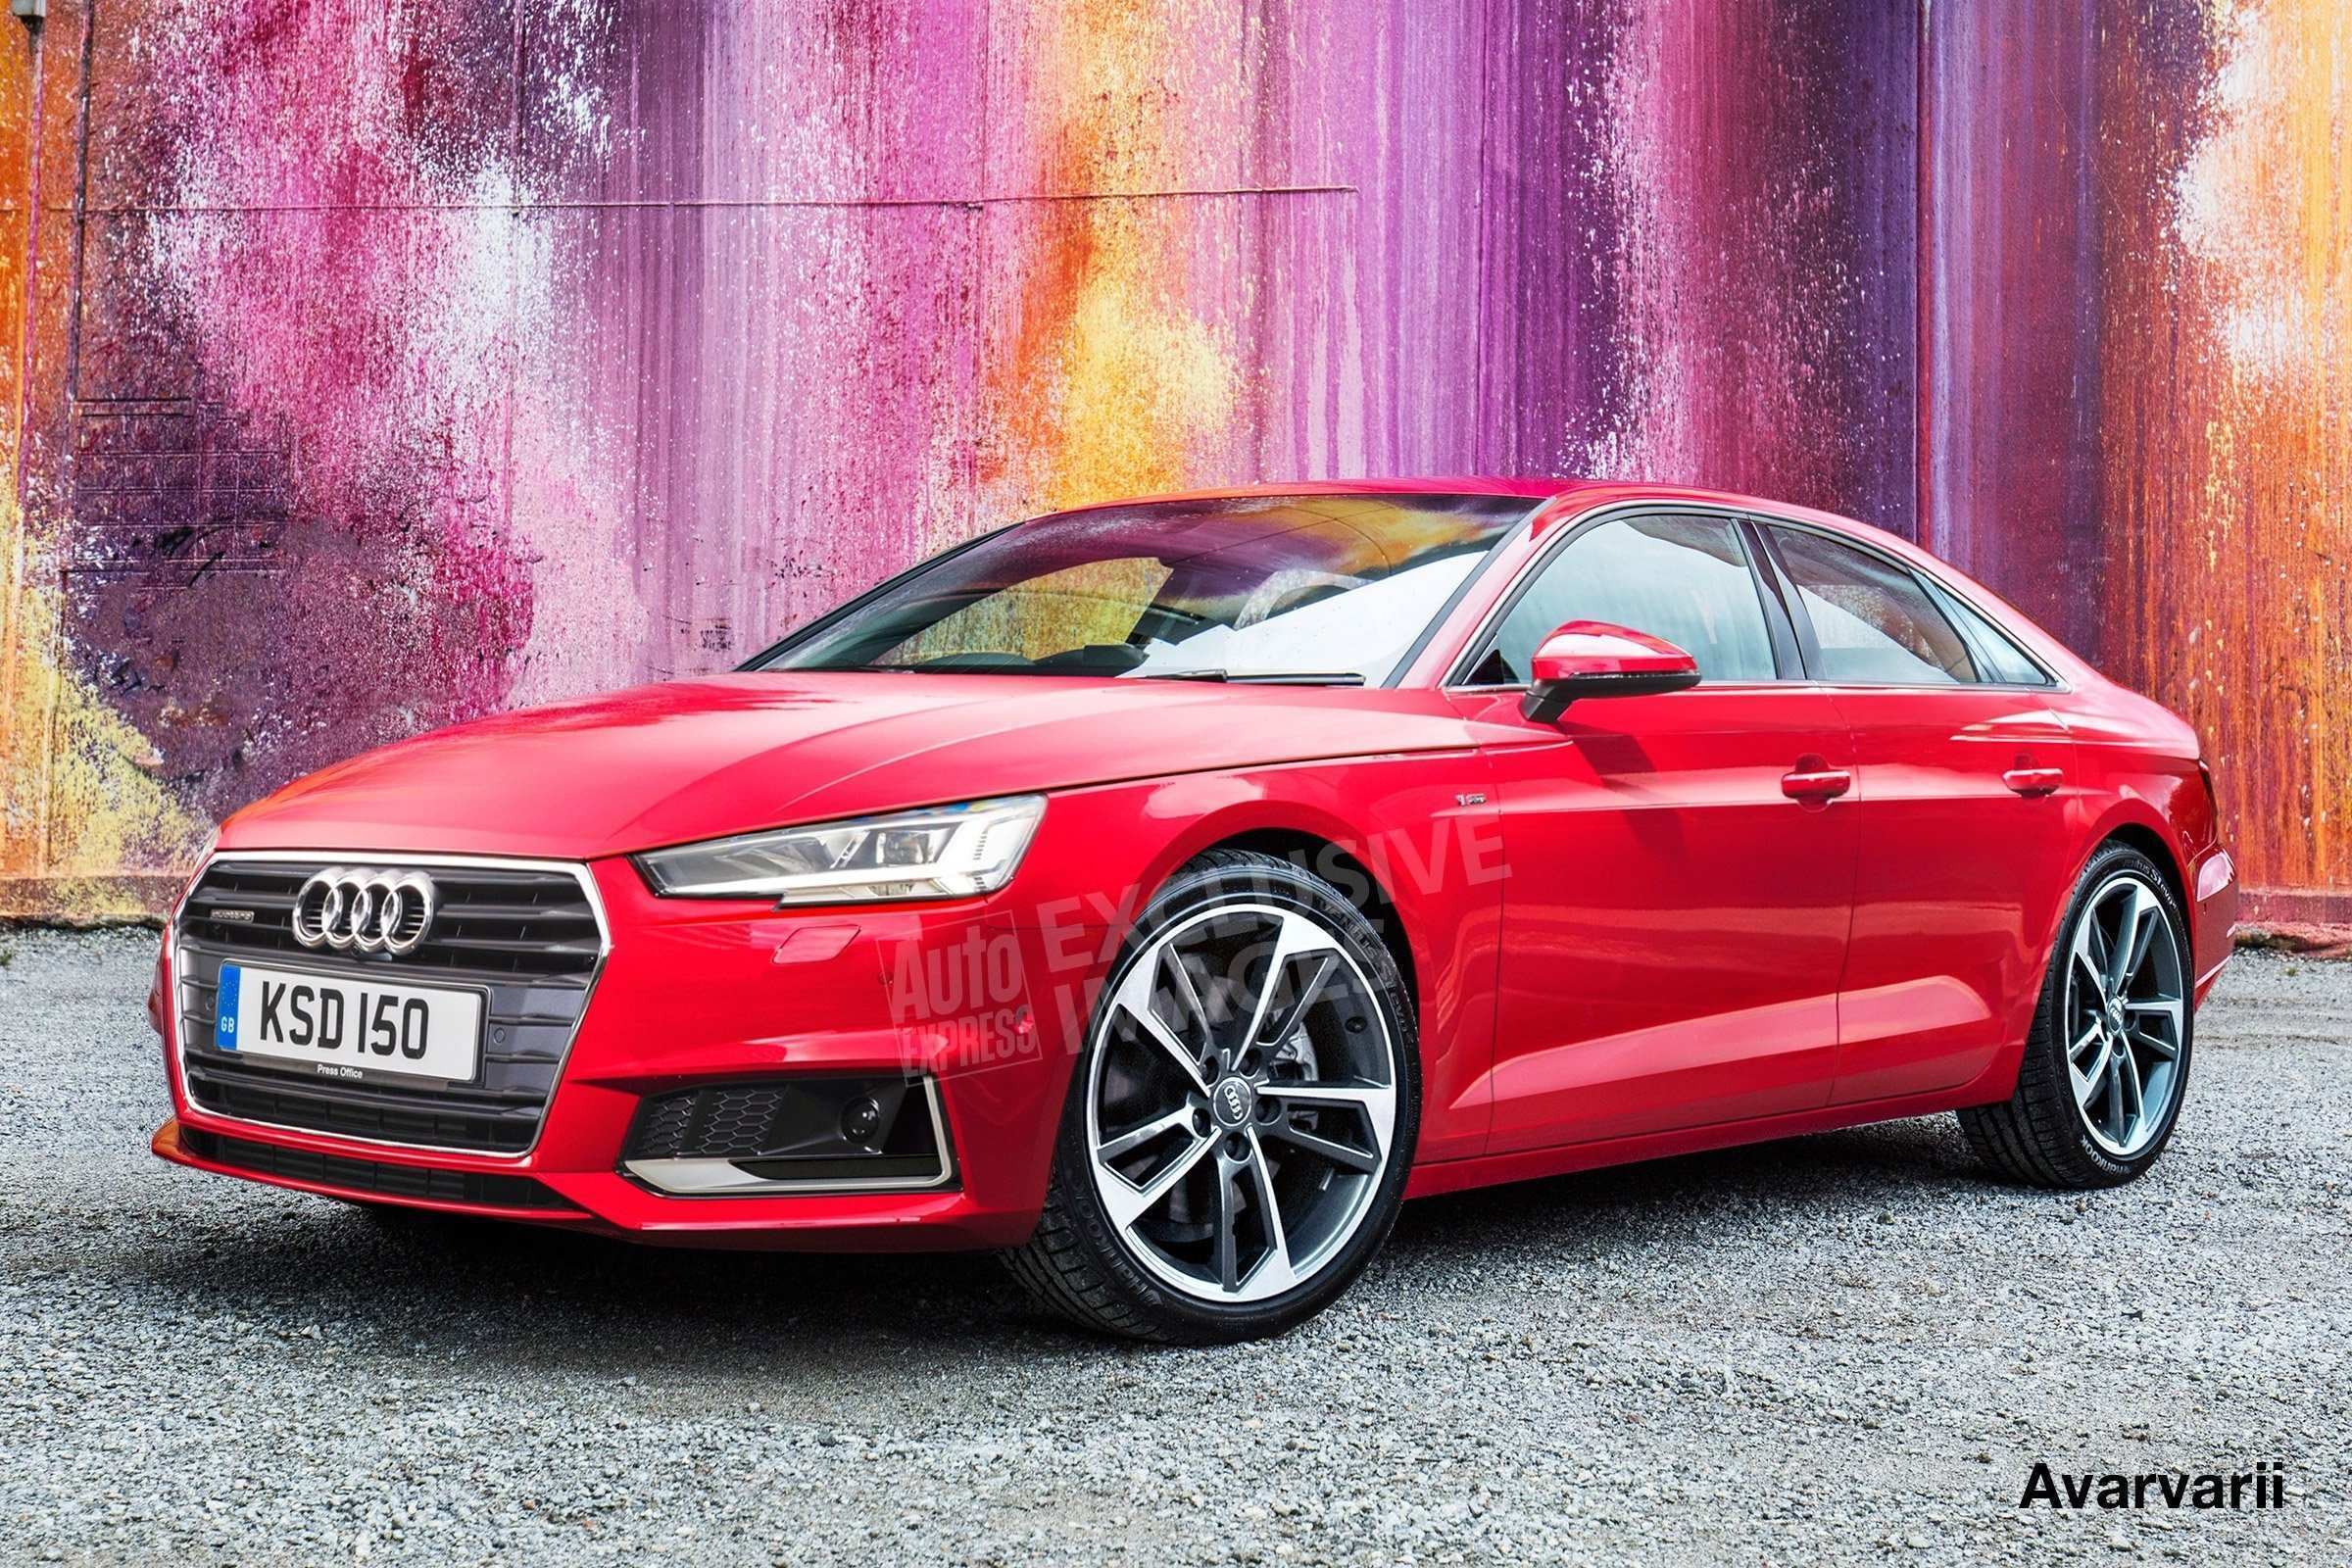 64 The Best Audi A3 2020 Release Date Release Date And Concept